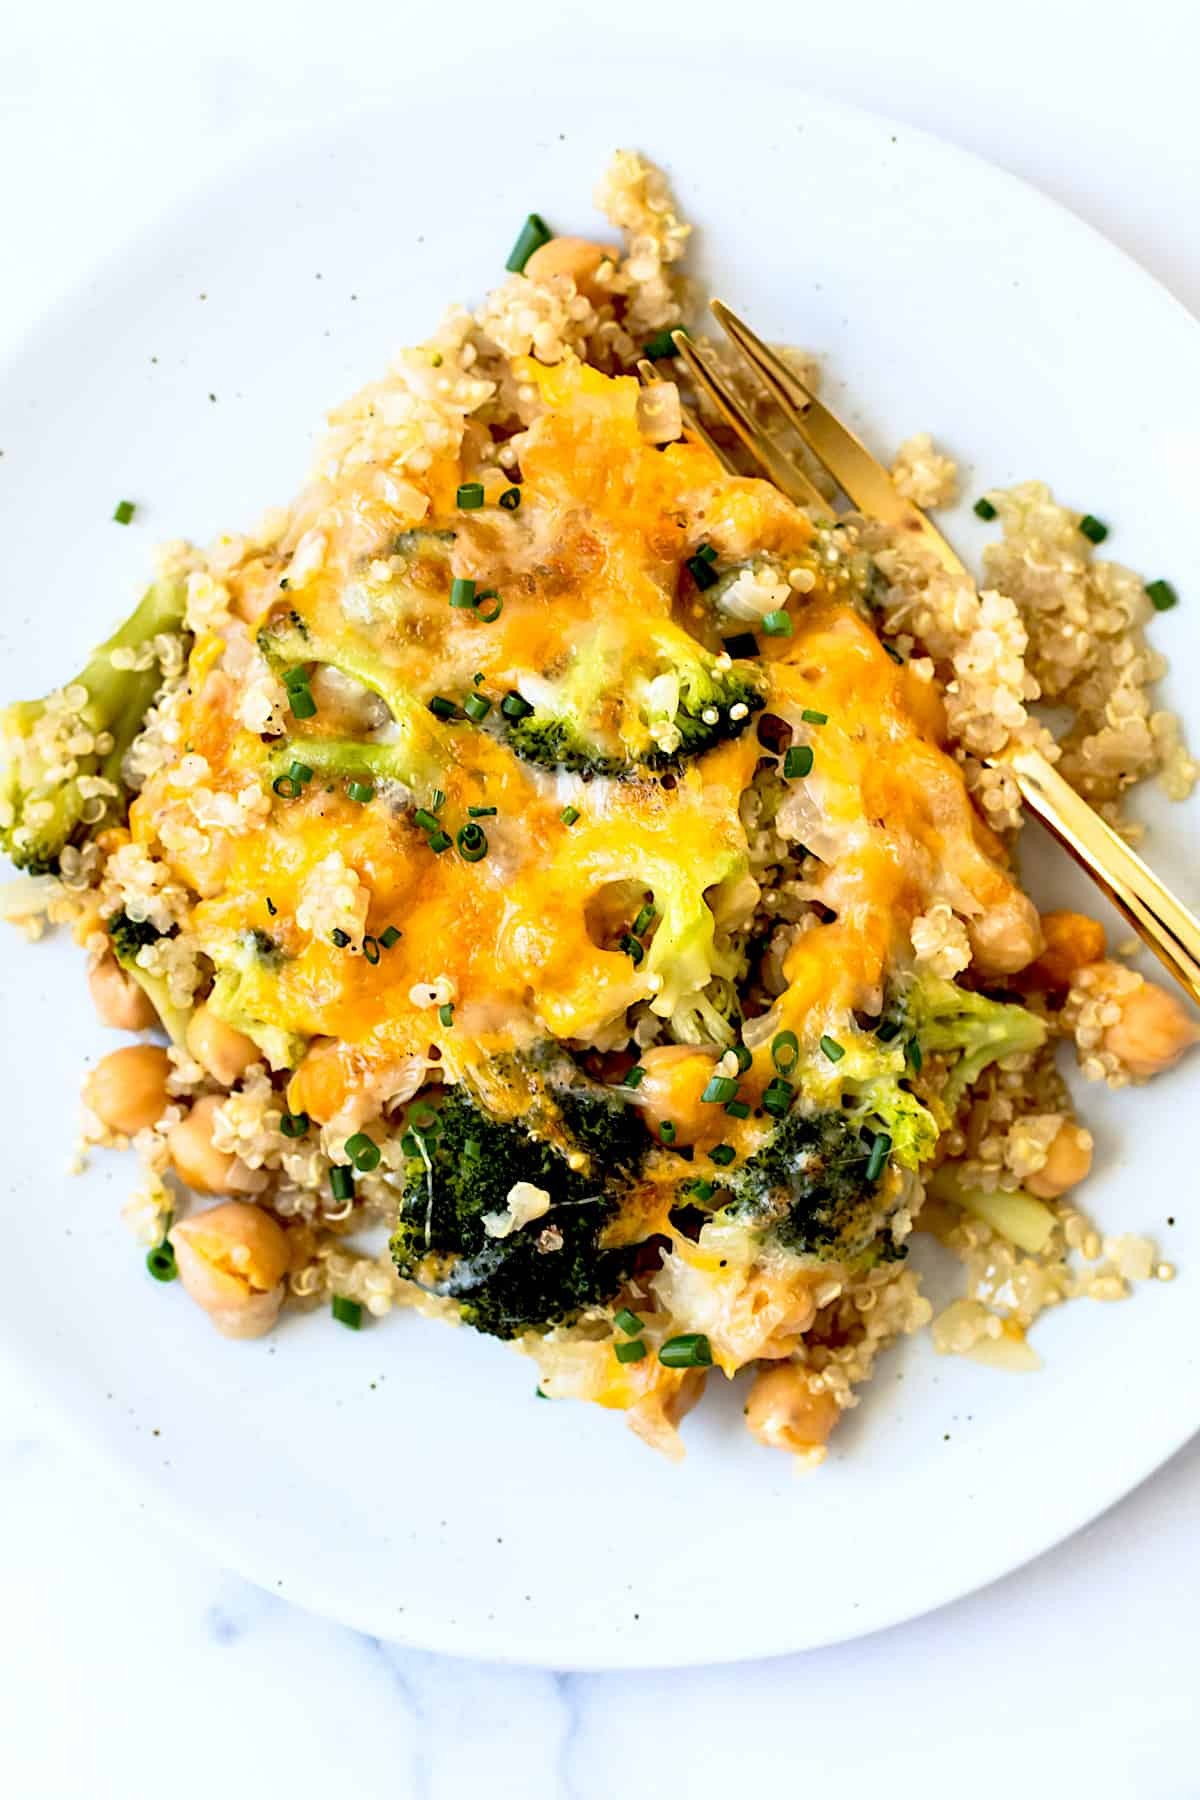 Quinoa casserole with broccoli and cheese on a plate.